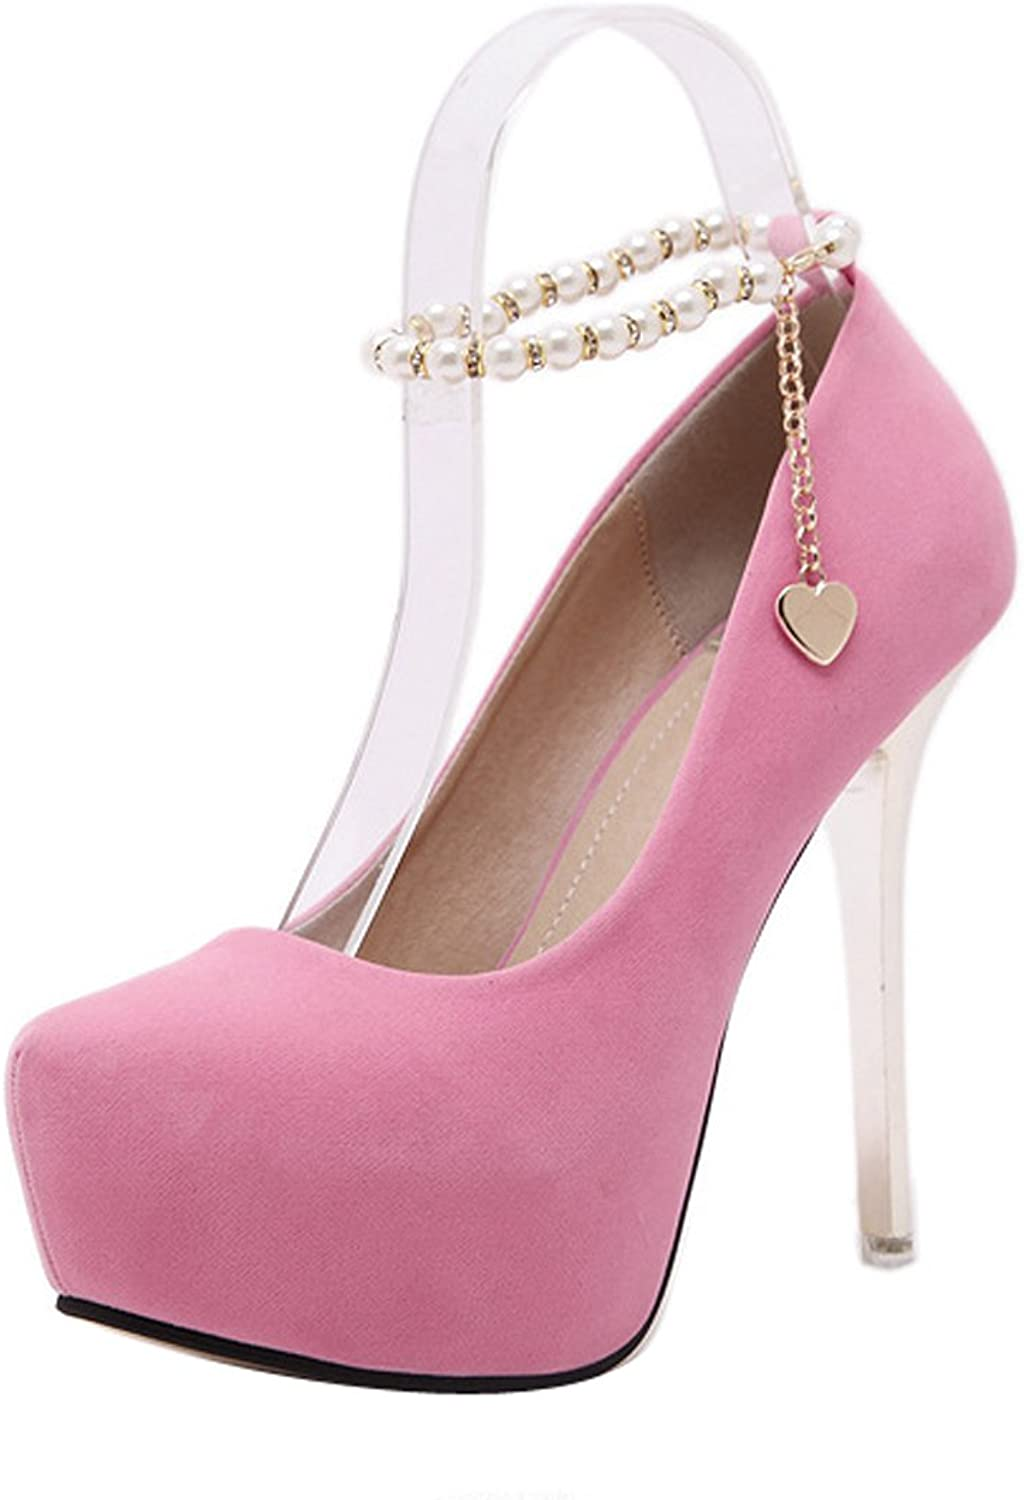 Ladola Womens Ankle Chain-Strap Closed-Toe Beaded Suede Pumps shoes